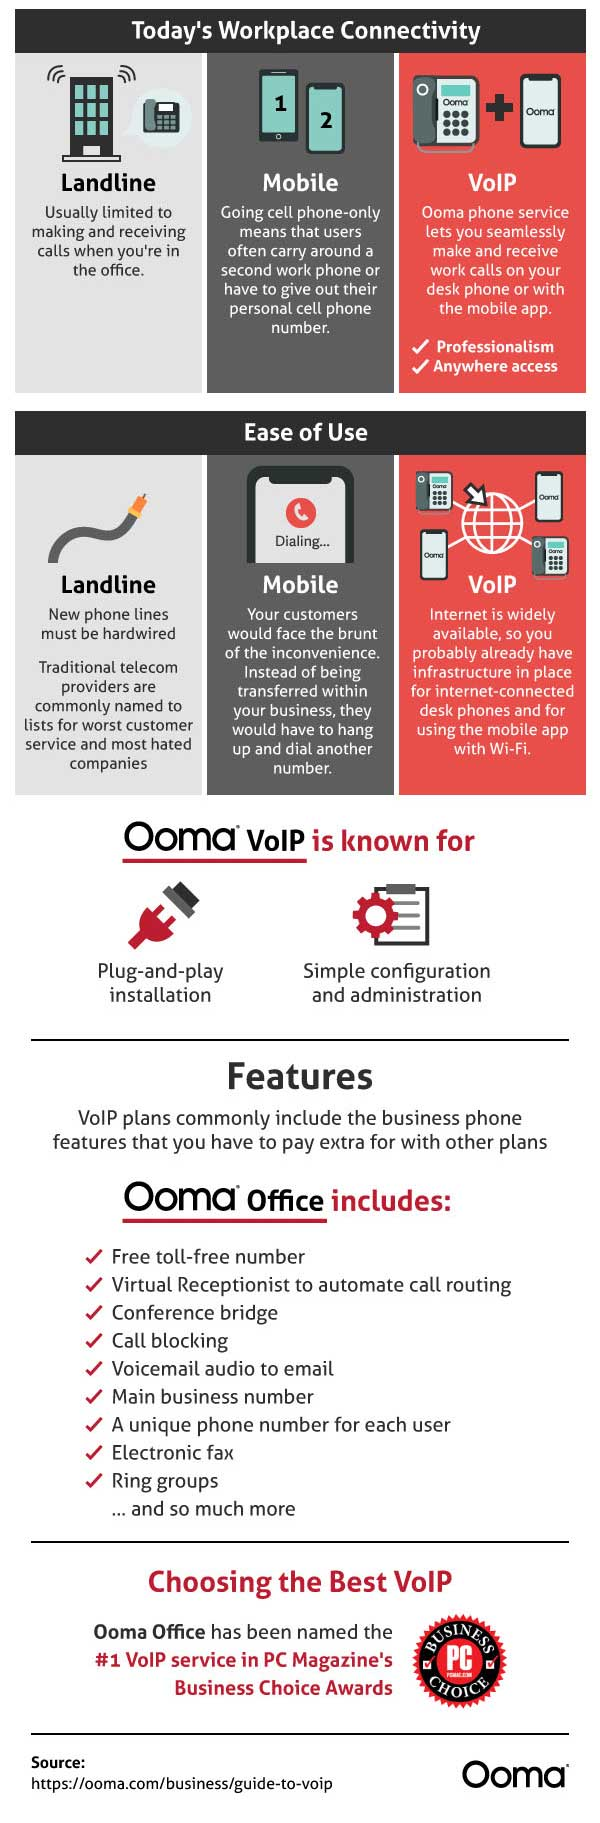 guide to voip infographic 2